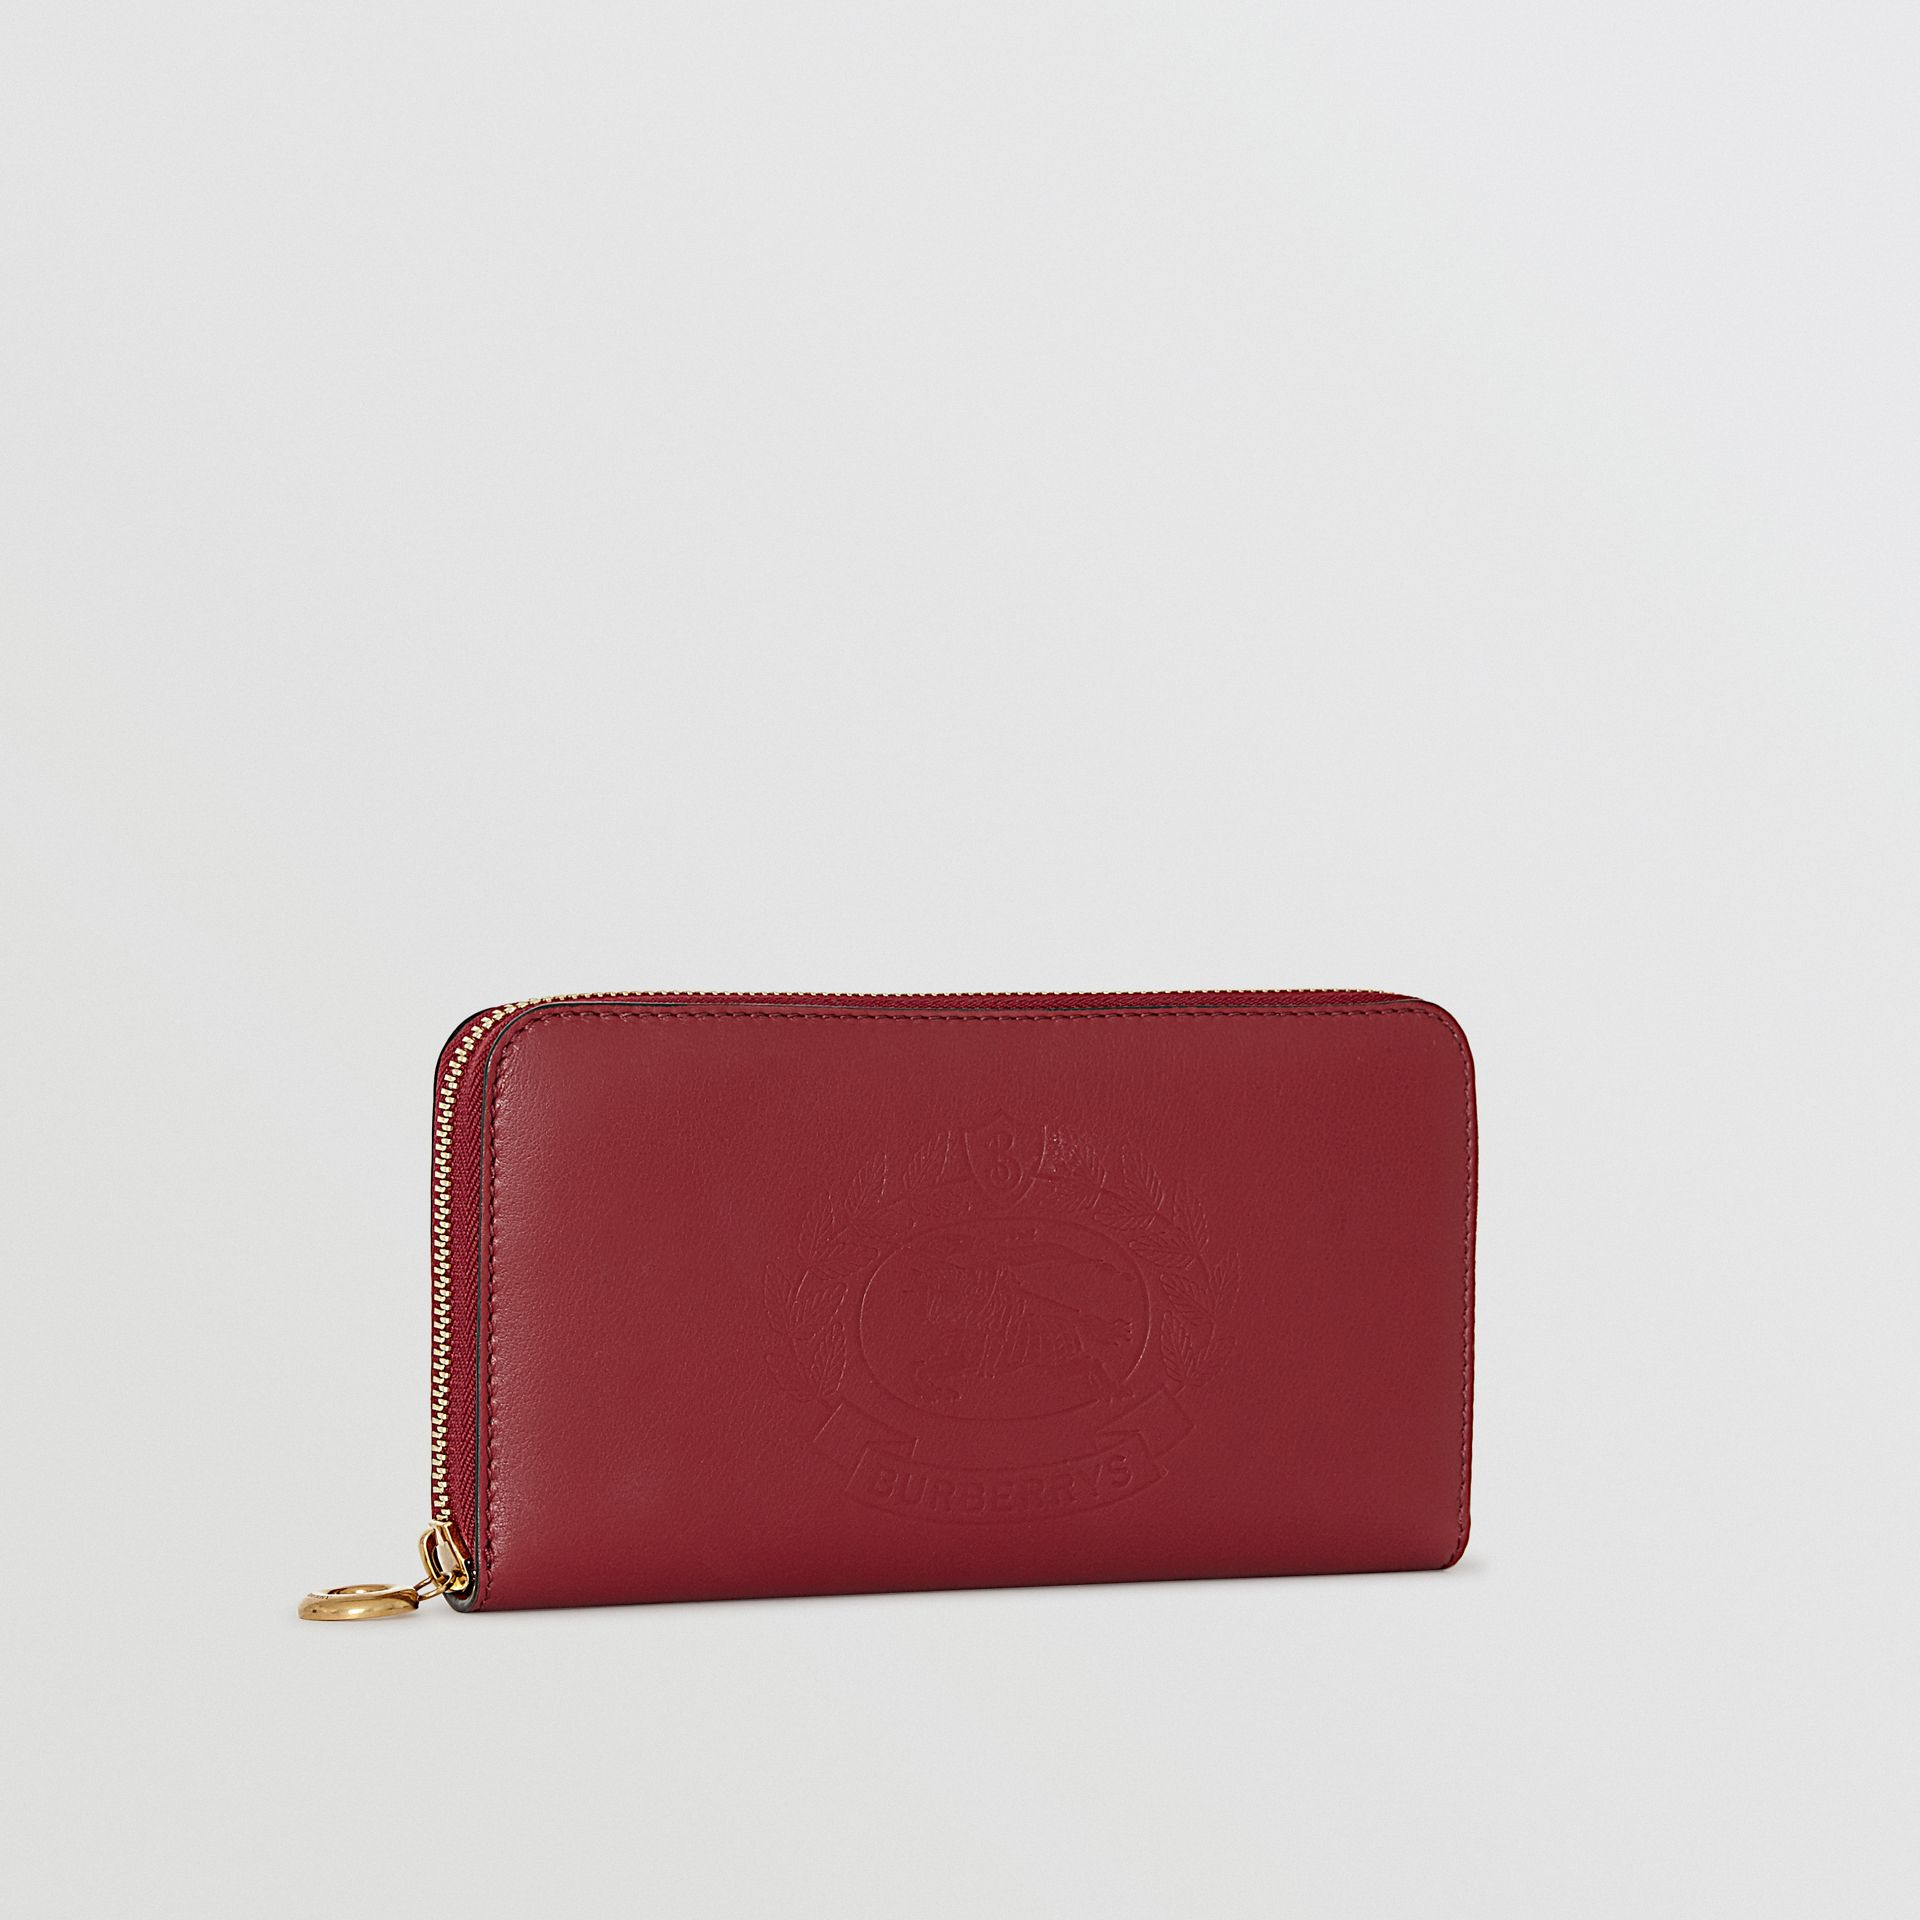 Embossed Crest Two-tone Leather Ziparound Wallet in Crimson - Women | Burberry - gallery image 3